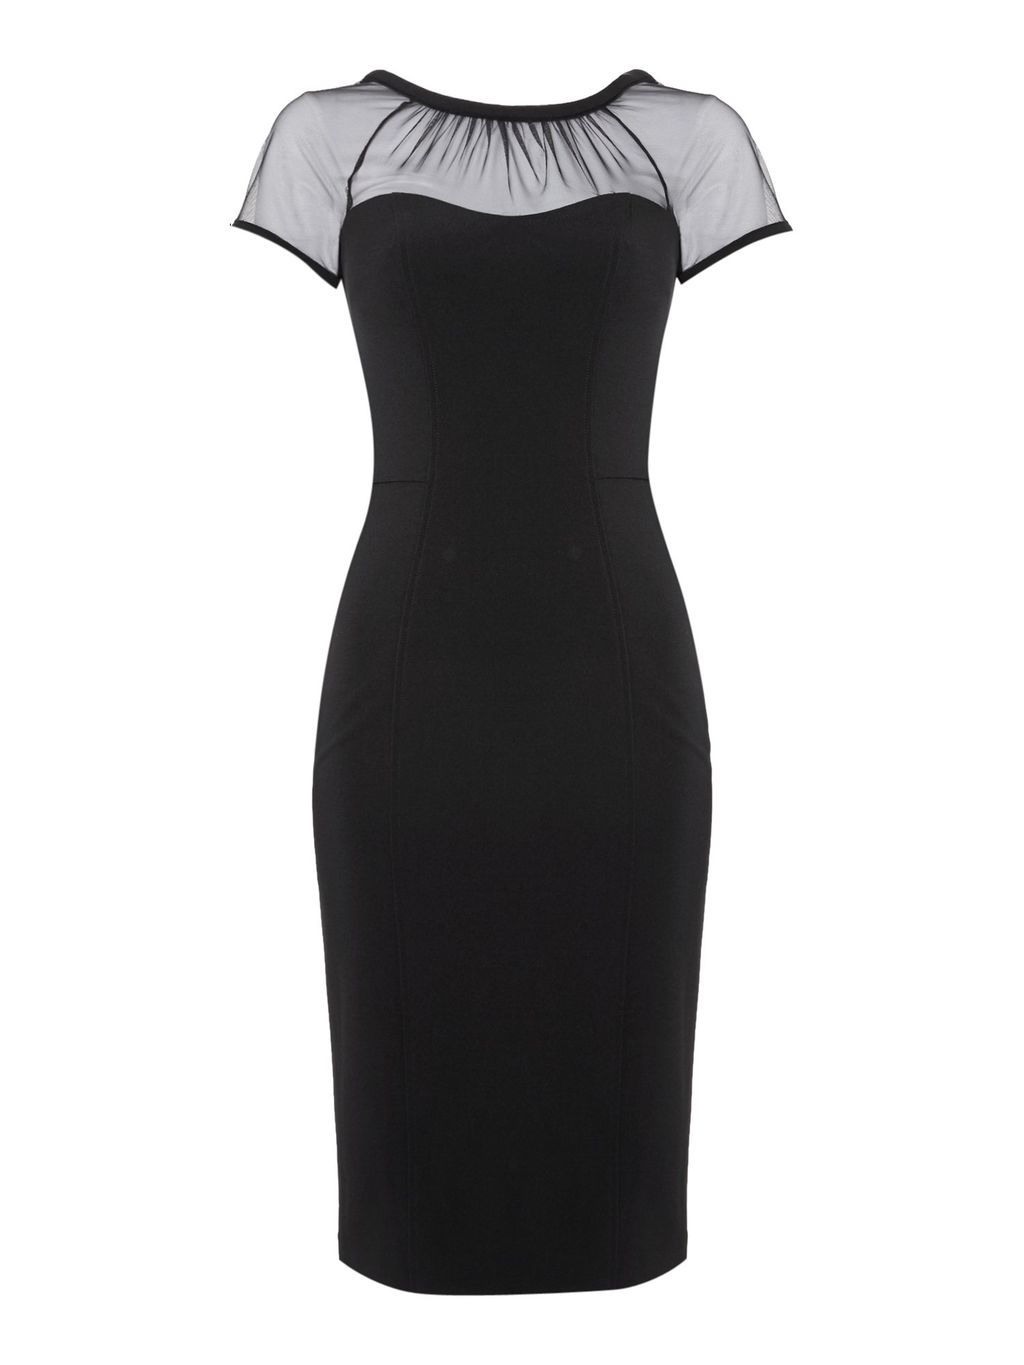 Thea Illusion Dress, Black - style: shift; sleeve style: capped; fit: tailored/fitted; pattern: plain; hip detail: draws attention to hips; predominant colour: black; occasions: evening, occasion; length: on the knee; fibres: polyester/polyamide - mix; neckline: crew; sleeve length: short sleeve; texture group: crepes; pattern type: fabric; shoulder detail: sheer at shoulder; season: a/w 2016; wardrobe: event